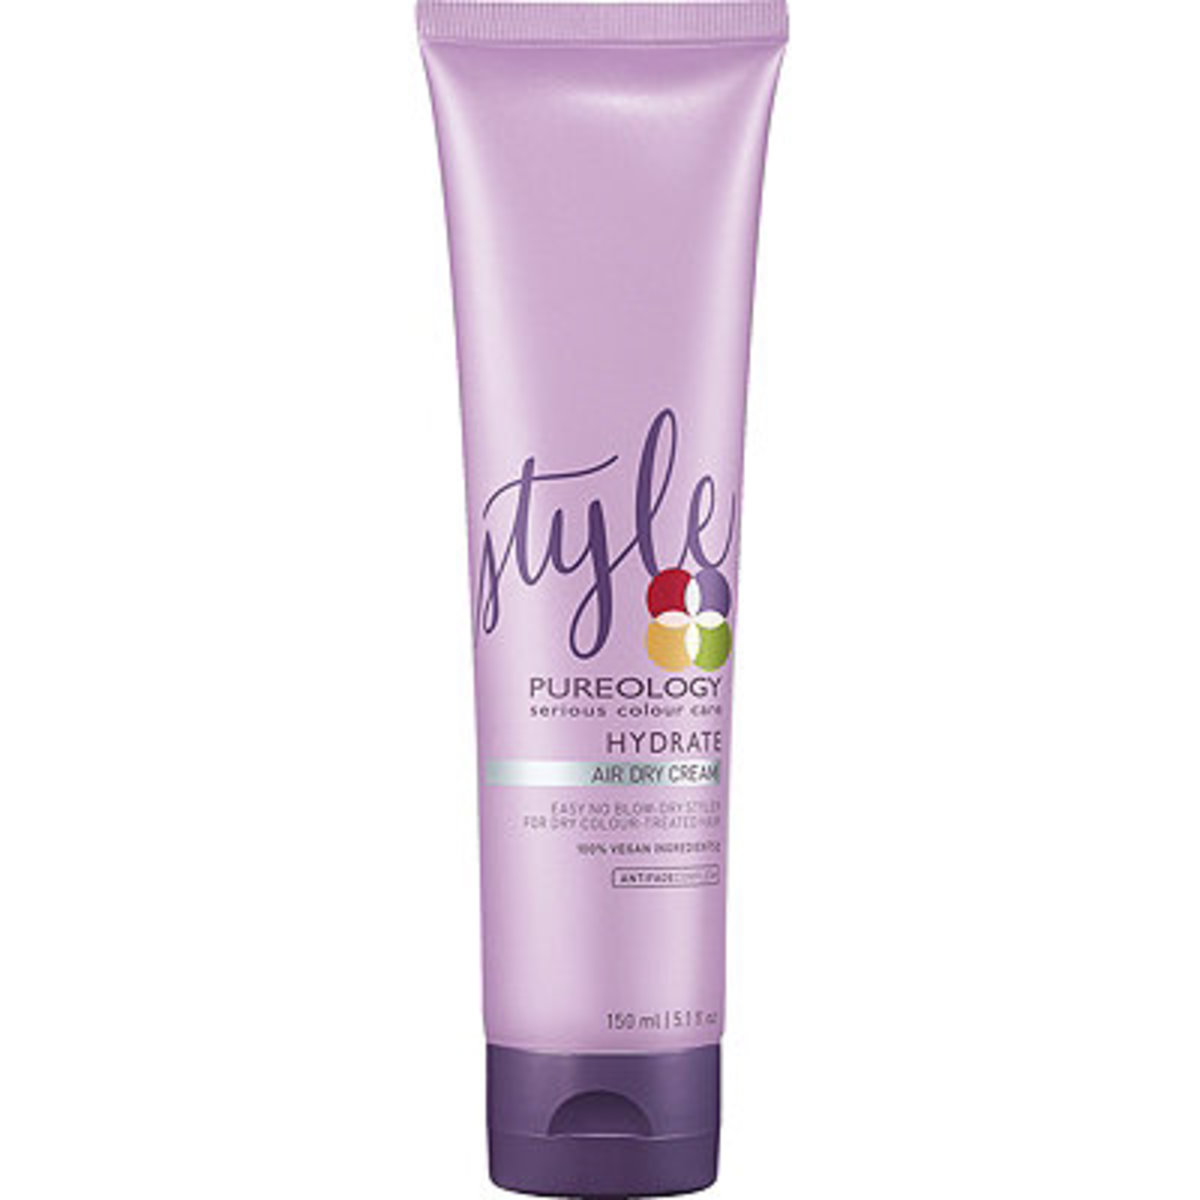 Pureology Hydrate Air Dry Cream, $28, available at Ulta.